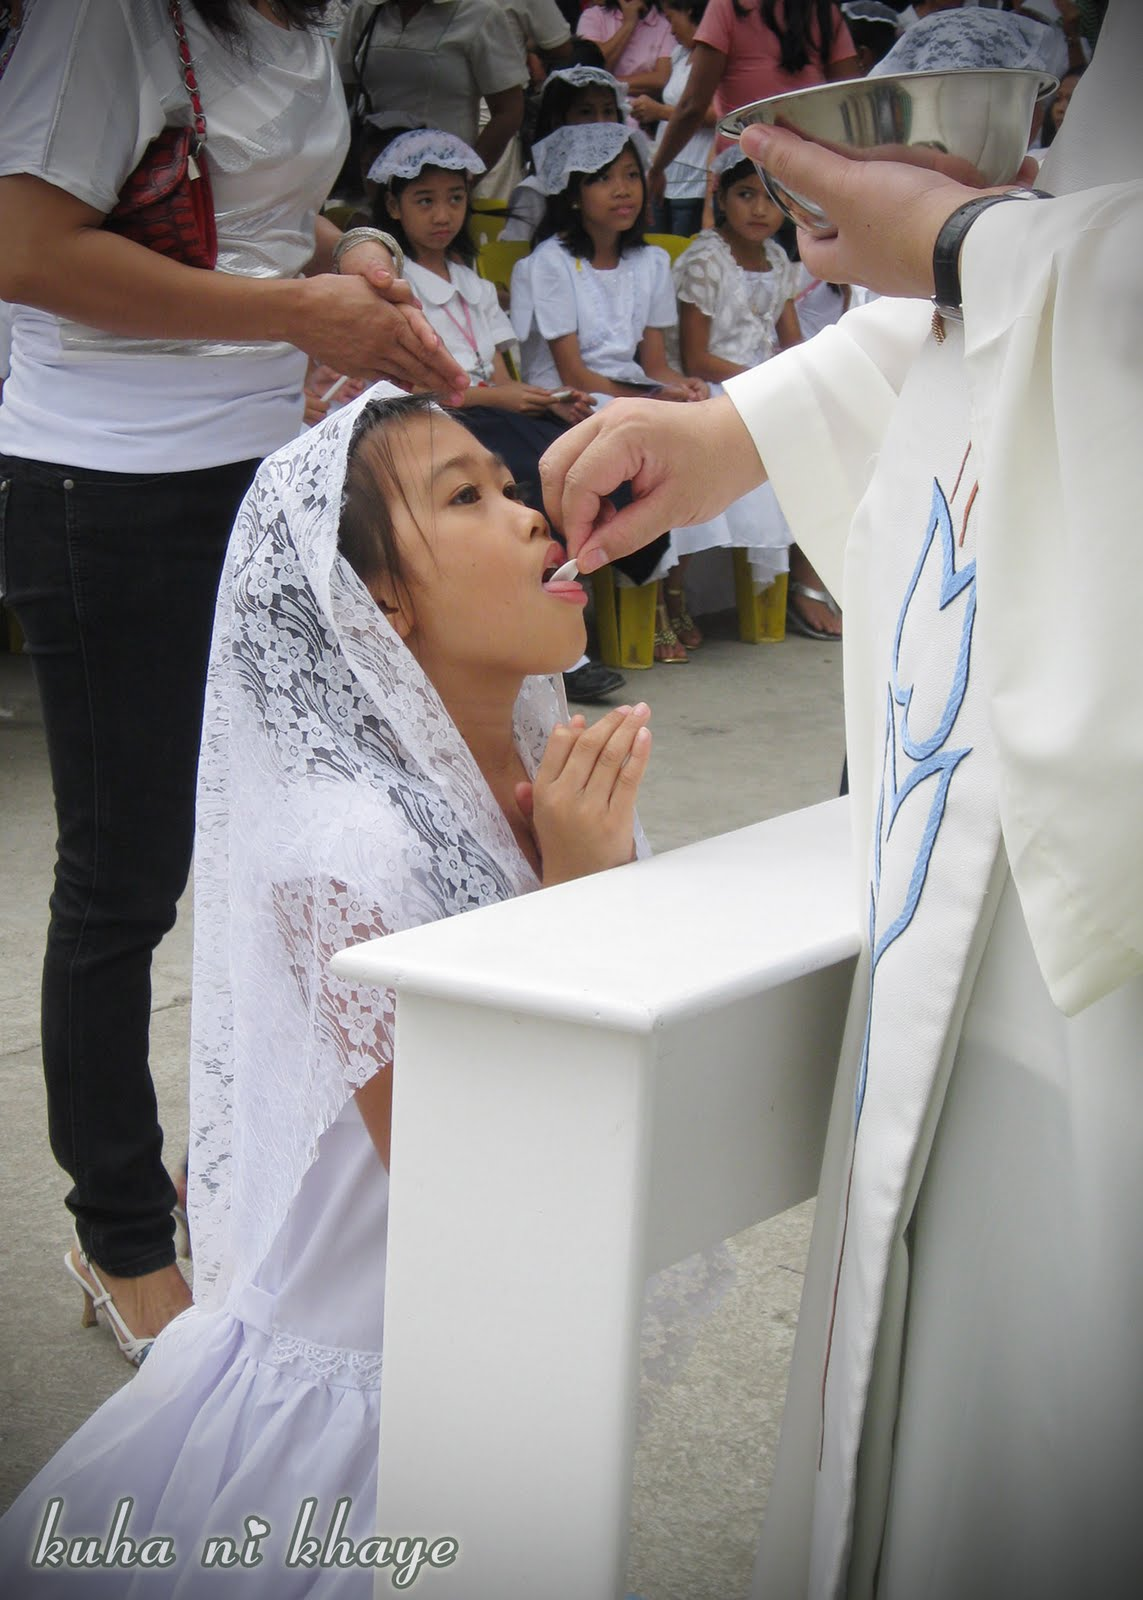 Litratista: First Communion